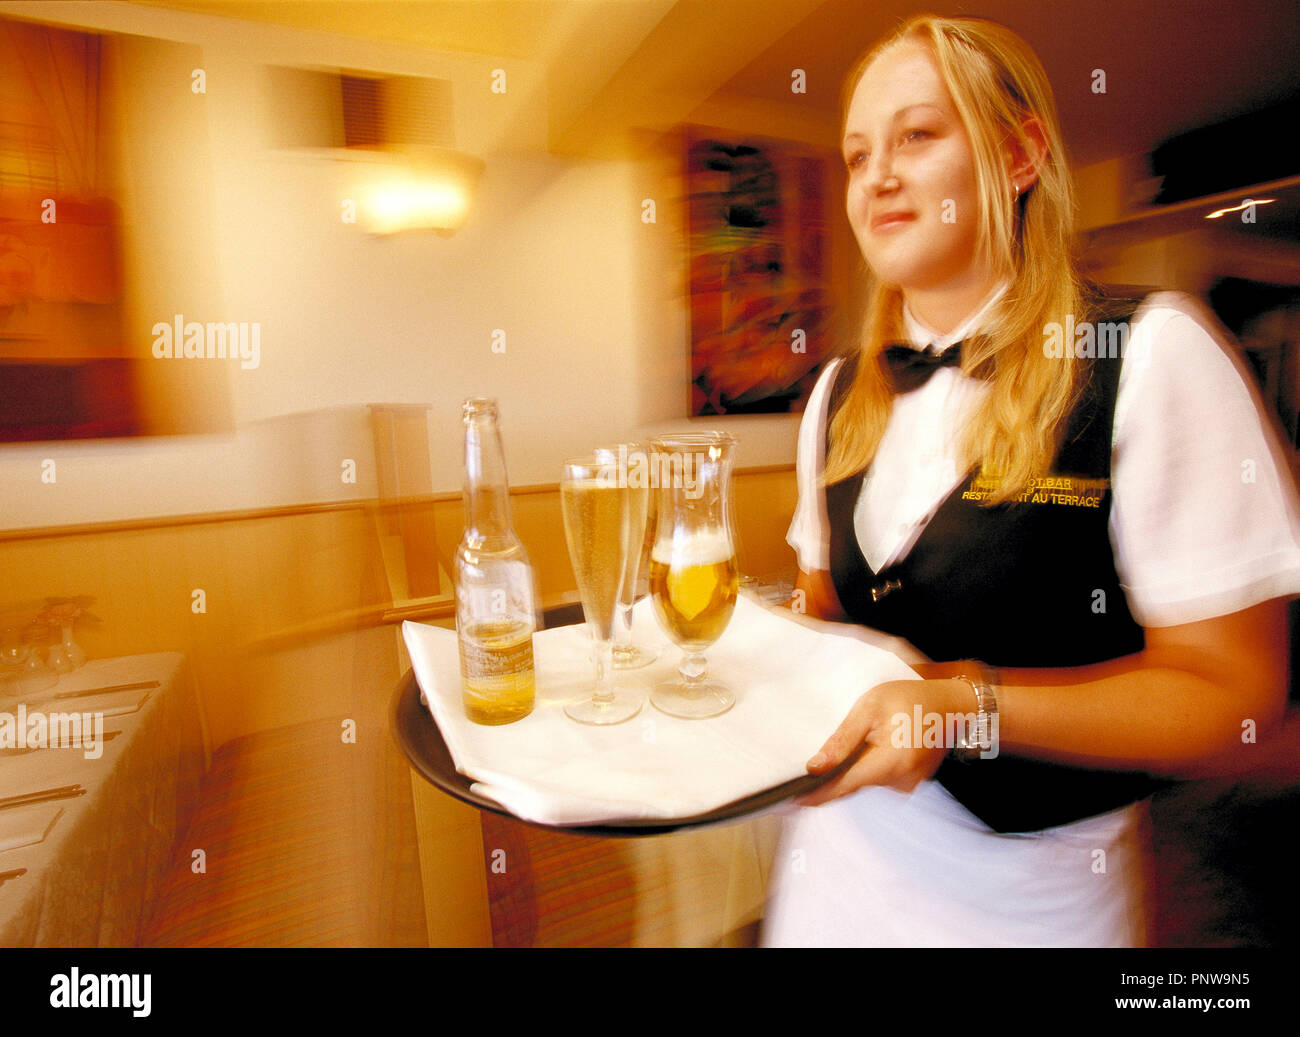 Young blond woman waitress with drinks tray in café restaurant bar. - Stock Image